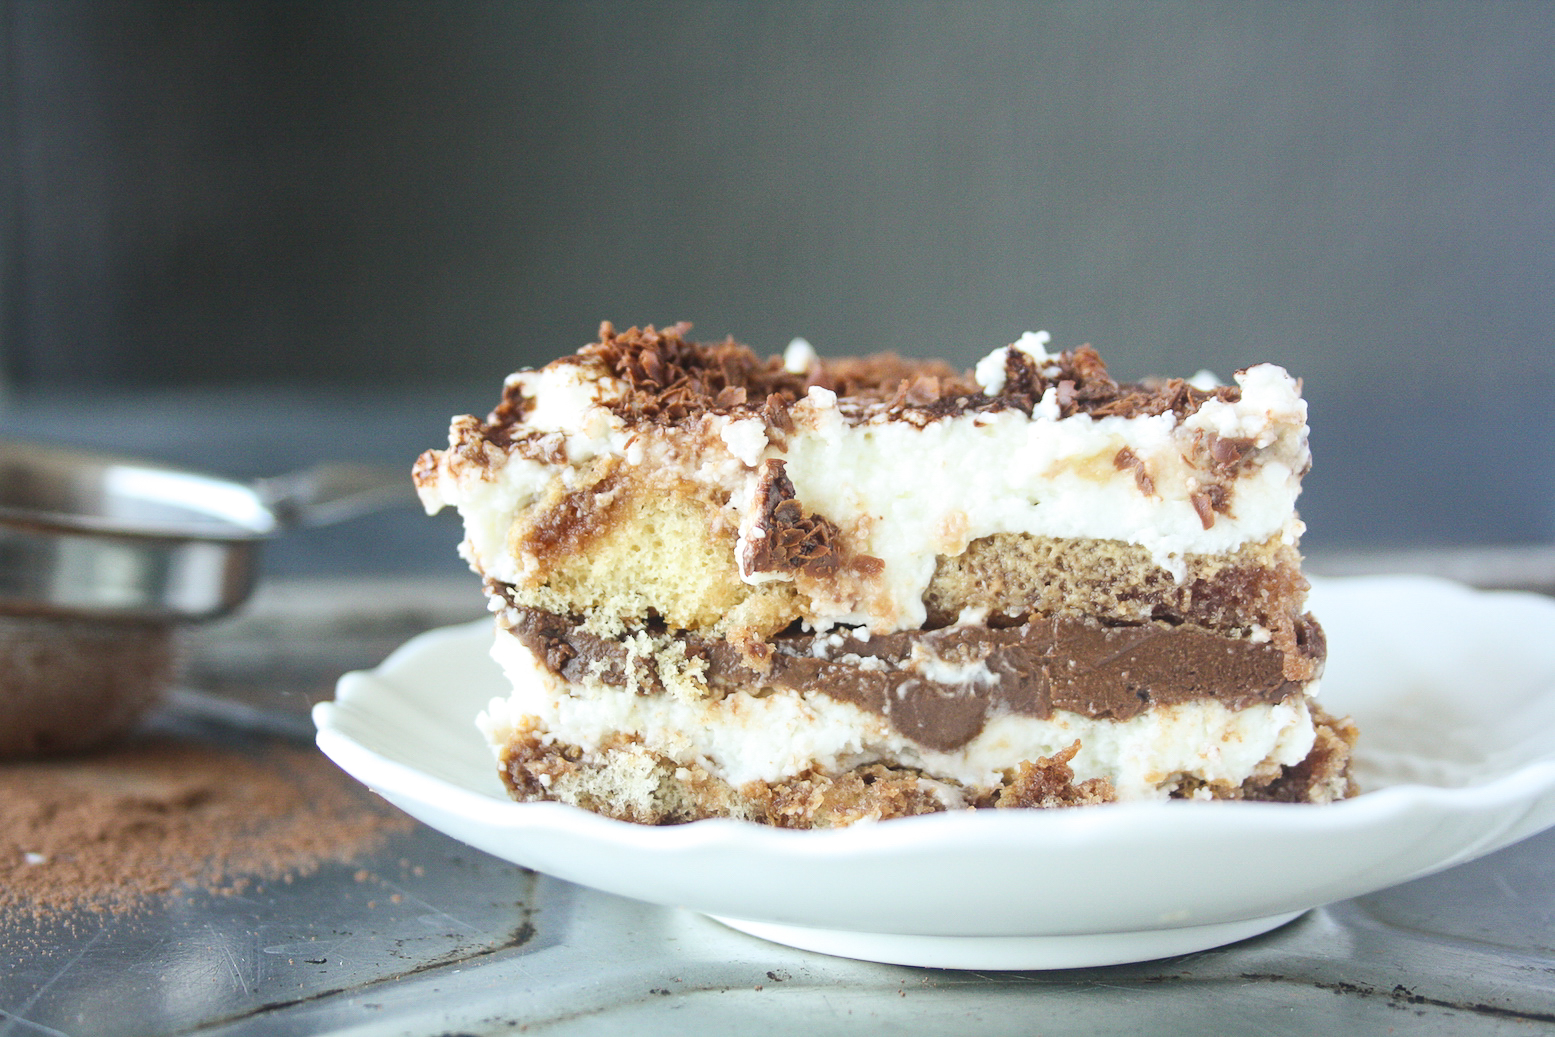 A rich chocolate tiramisu layered with ganache and mascarpone!